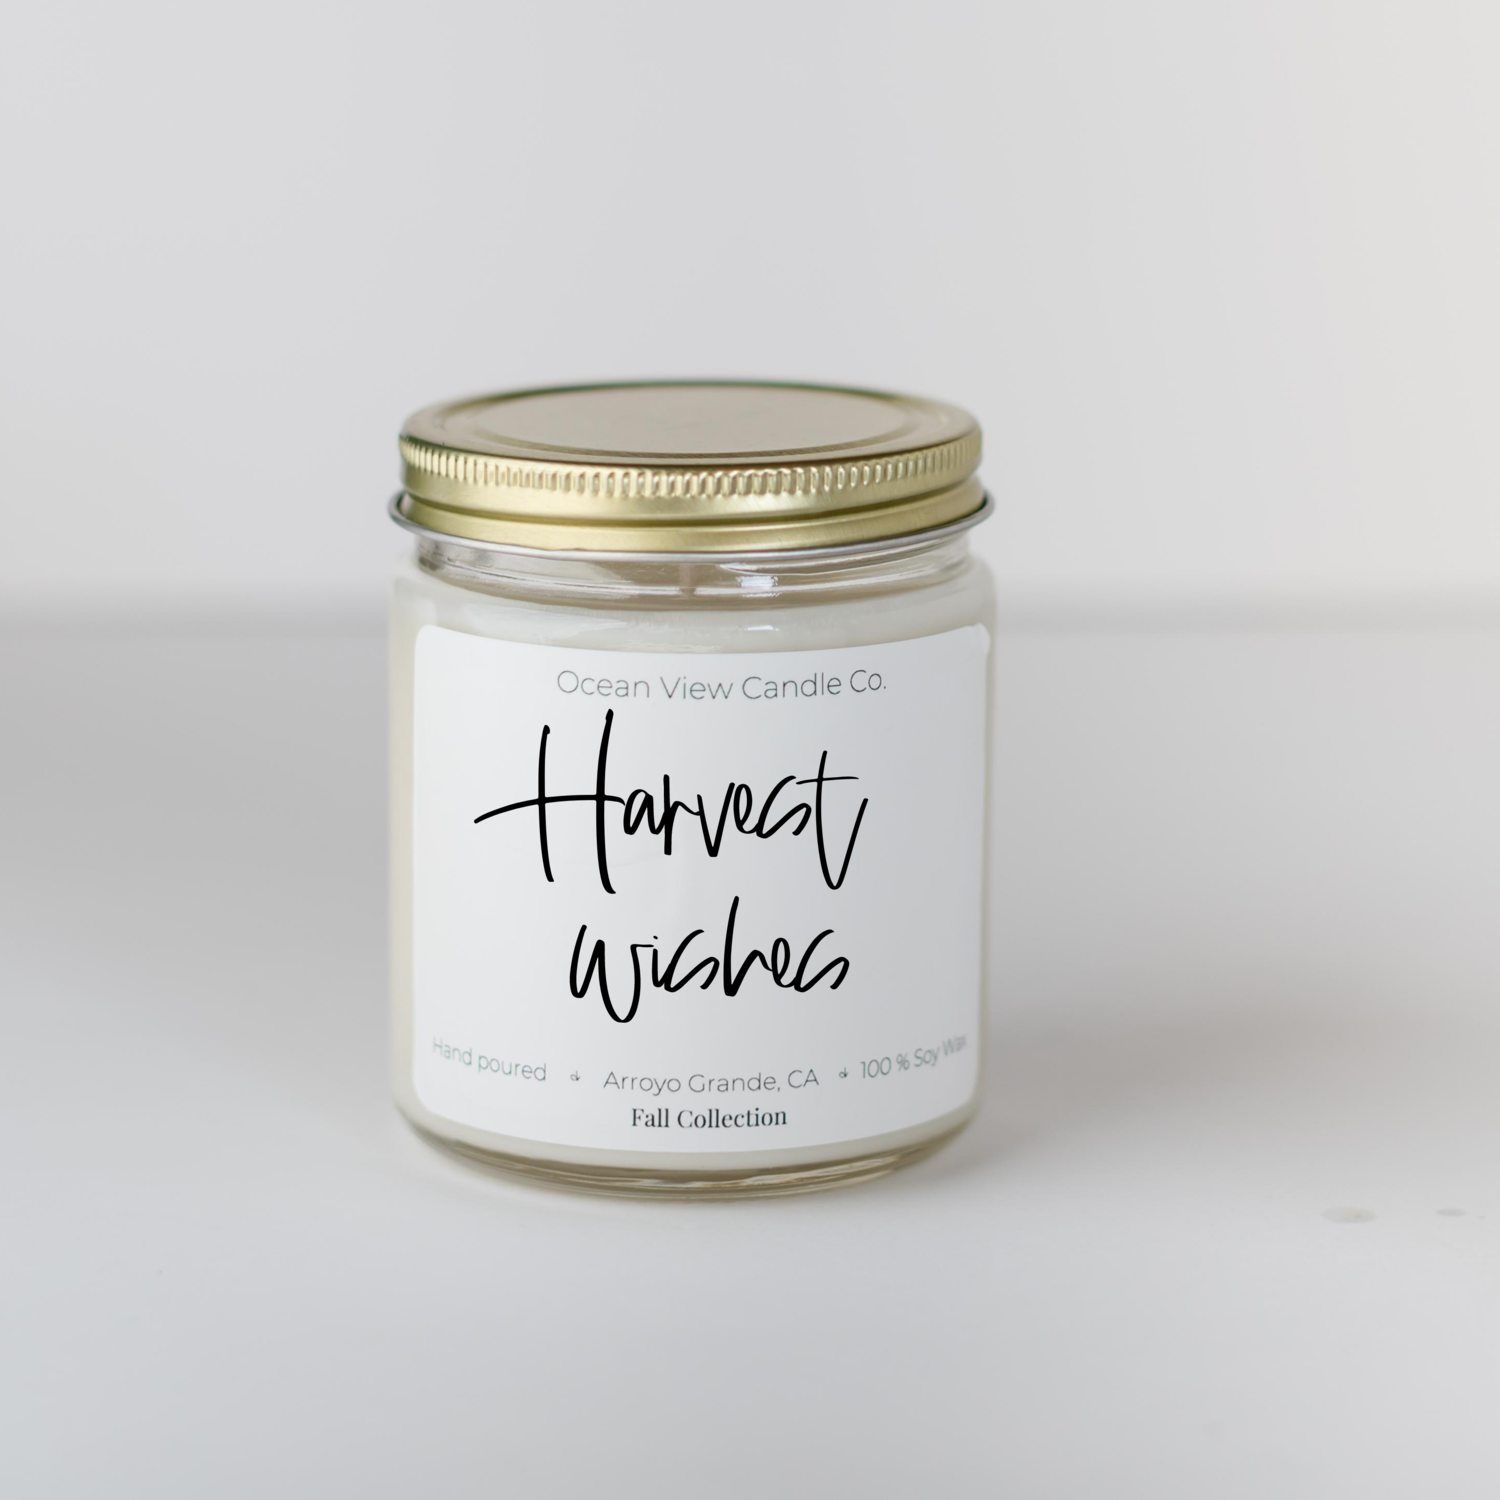 Harvest Orchard Soy Wax Scented Candle